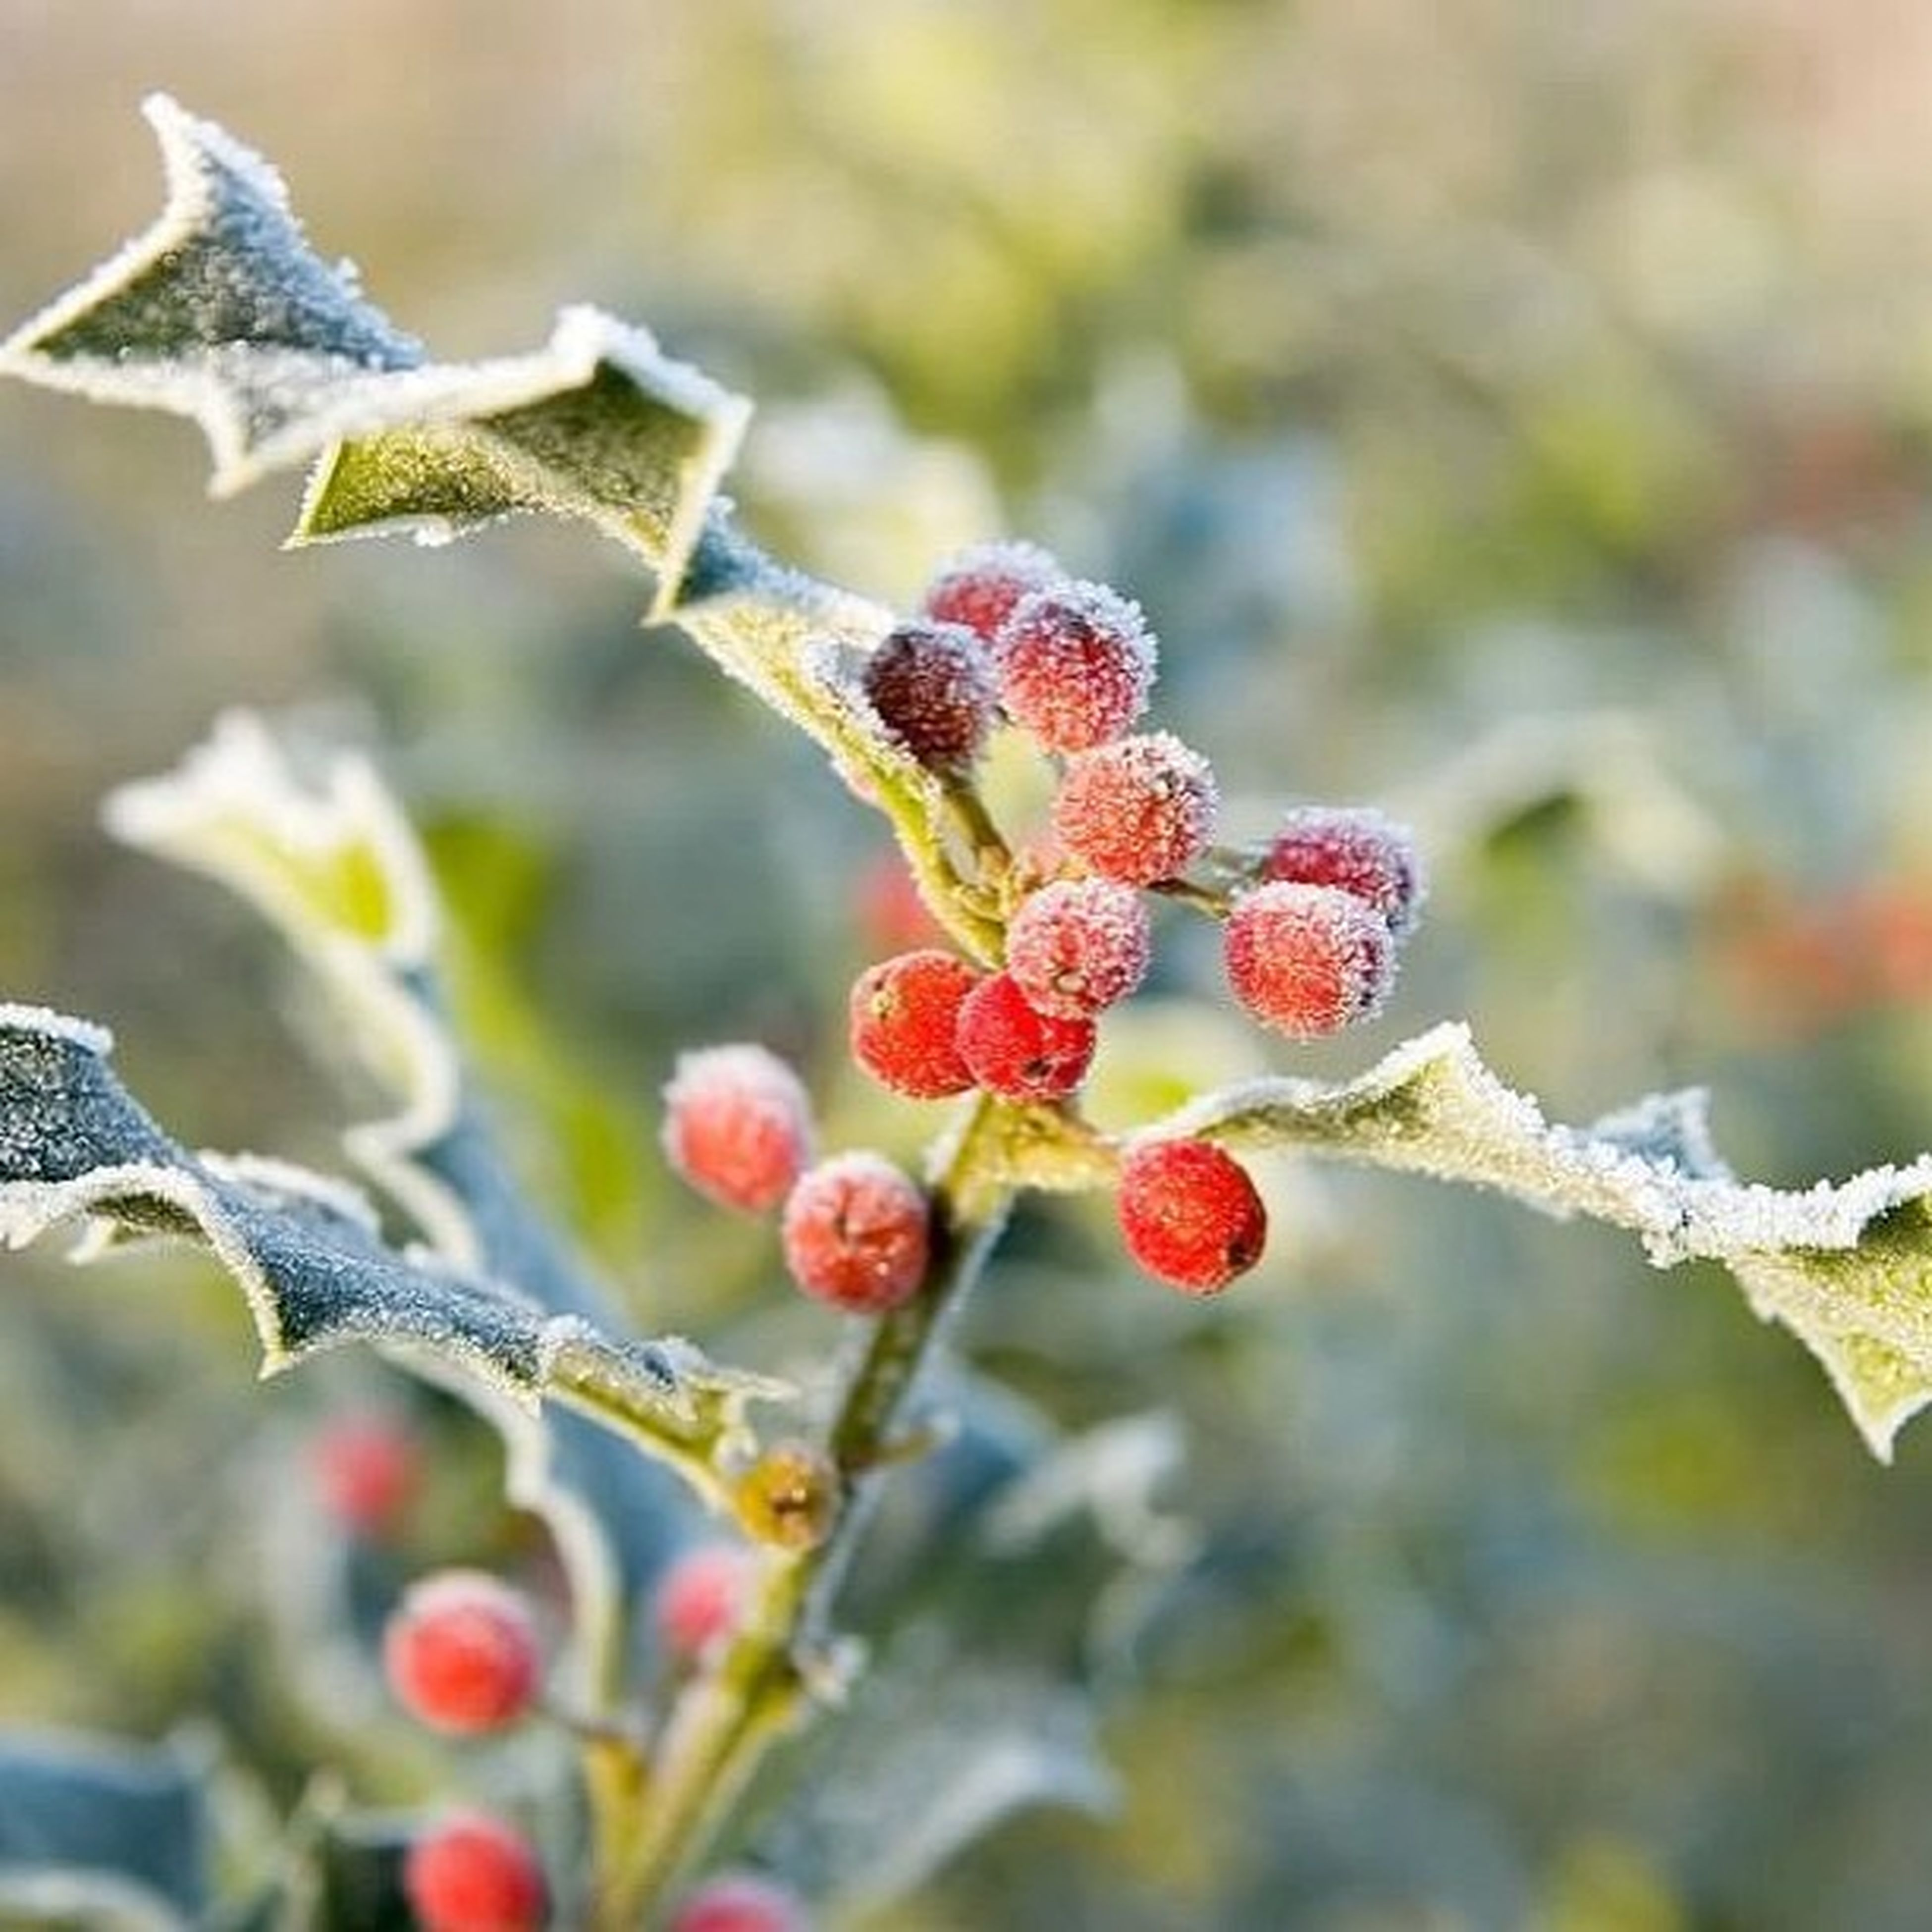 branch, fruit, focus on foreground, freshness, close-up, red, growth, nature, food and drink, twig, food, tree, berry, berry fruit, bud, day, selective focus, plant, beauty in nature, stem